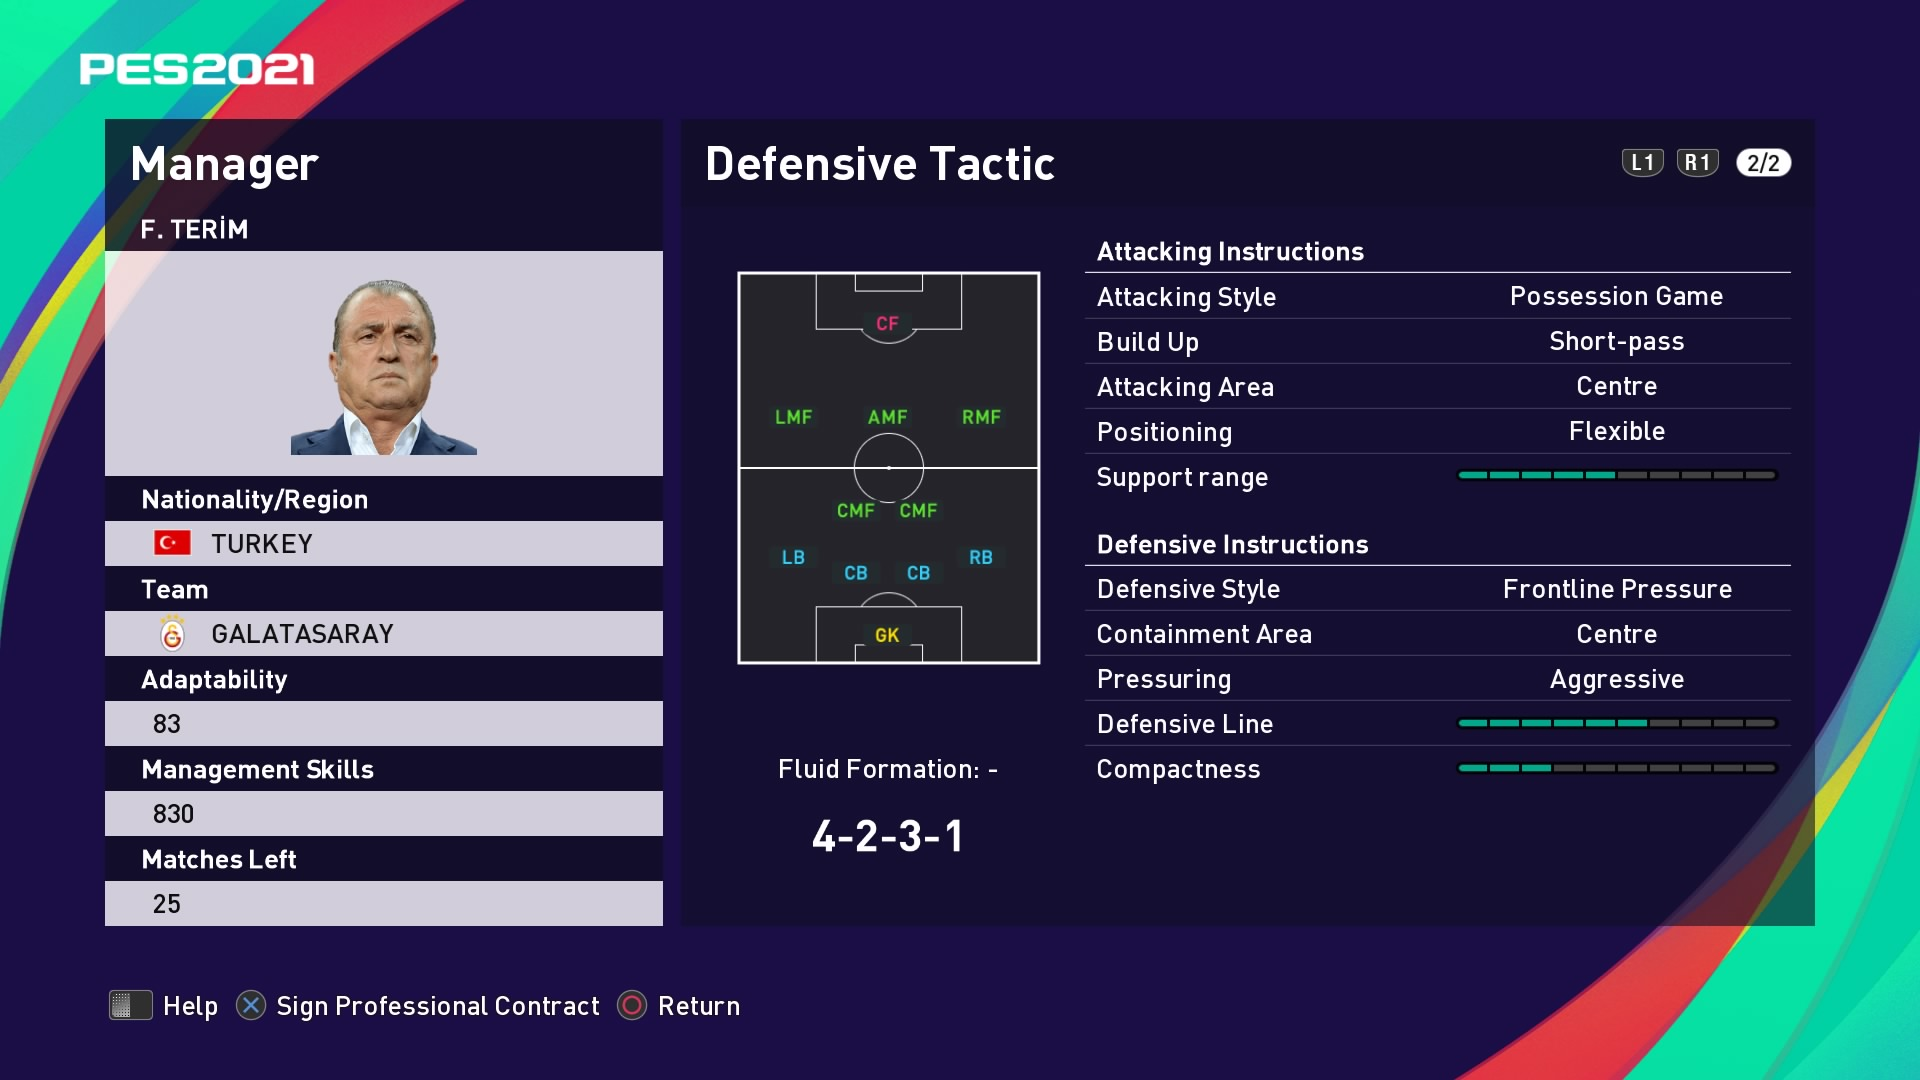 F. Terim (Fatih Terim) Defensive Tactic in PES 2021 myClub